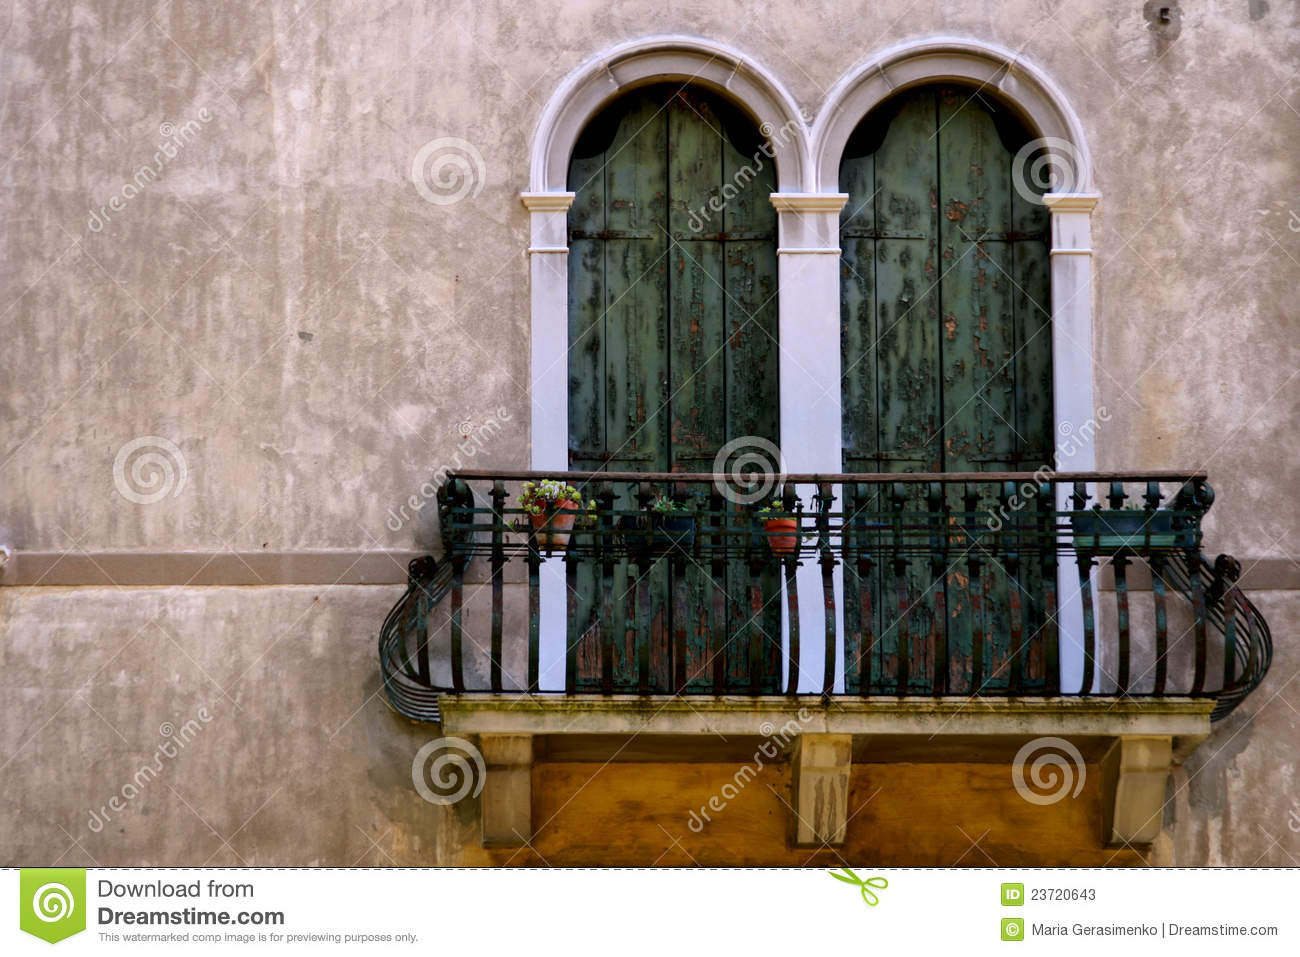 Italian balcony stock photos image 23720643 for Italian balcony